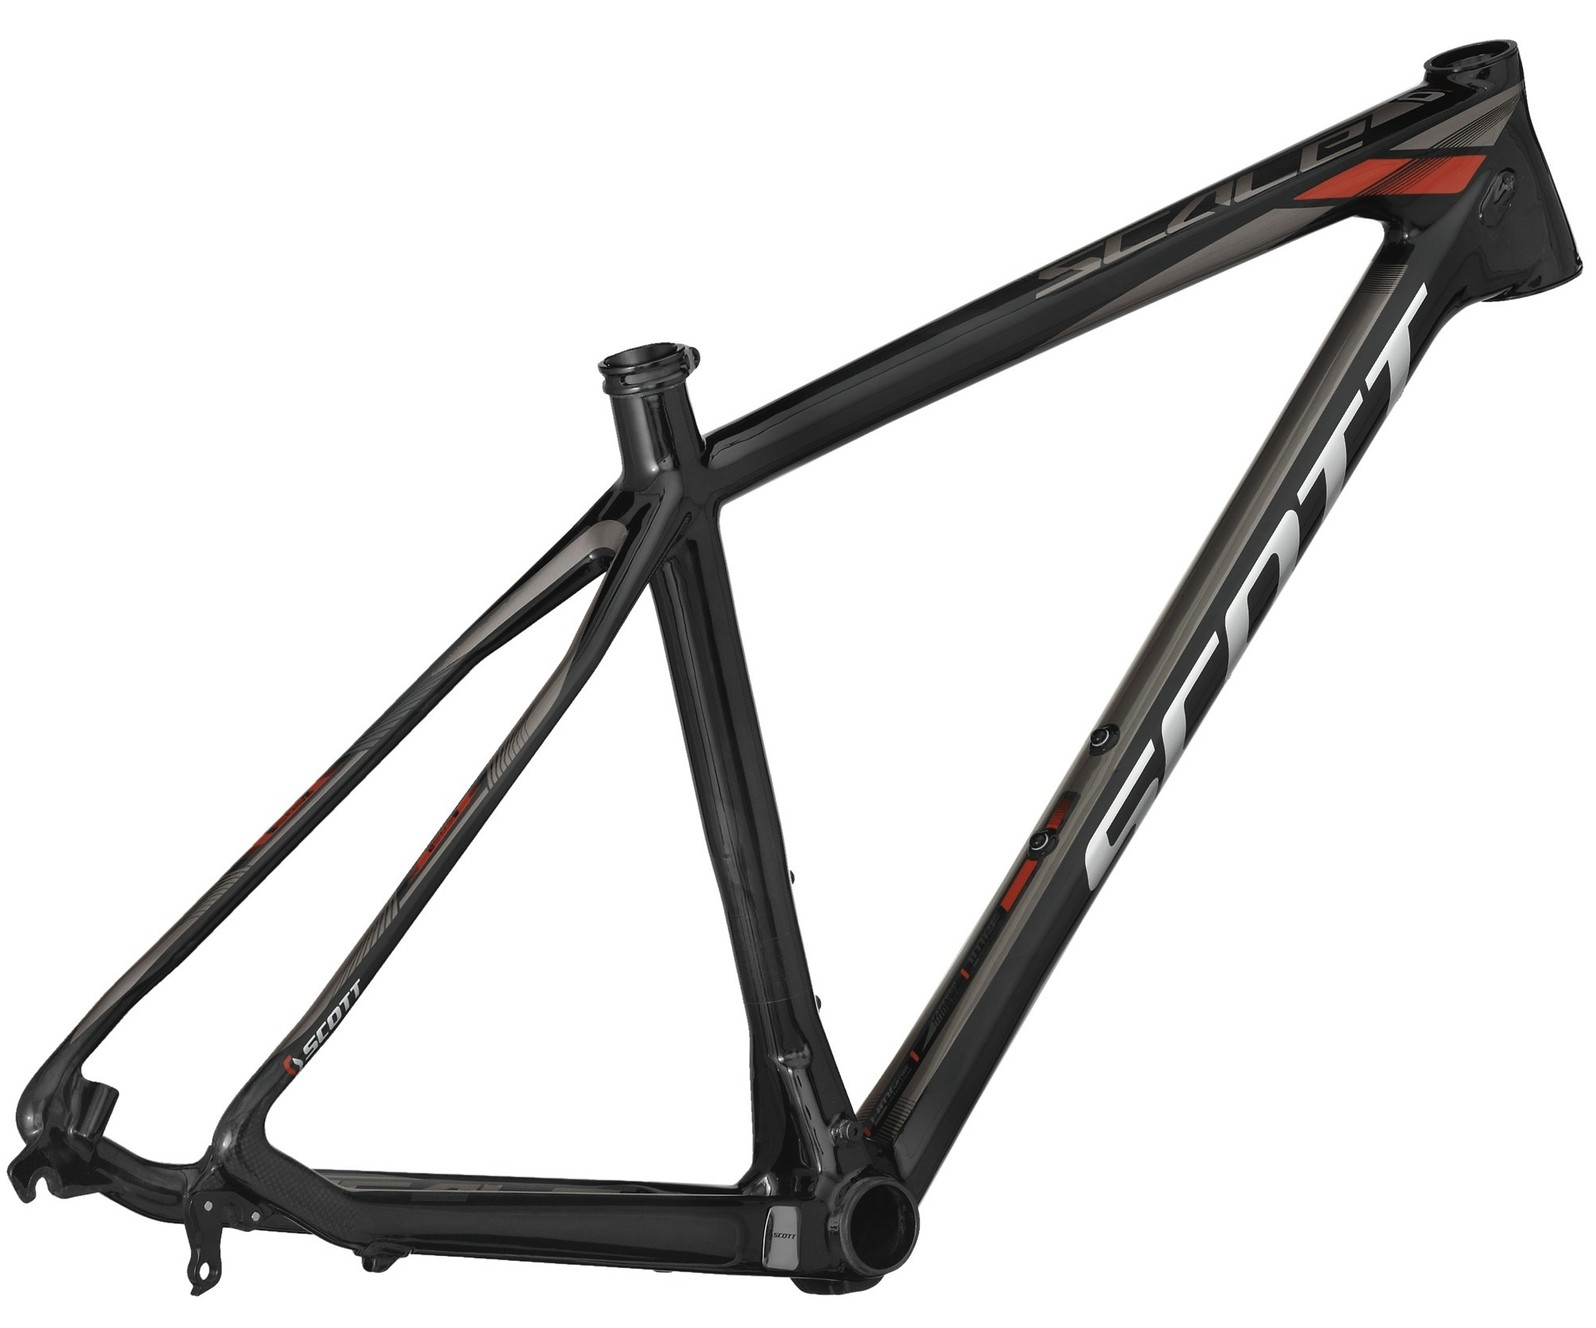 Scott scale 940 frame frame design reviews for Perfect scale pro review